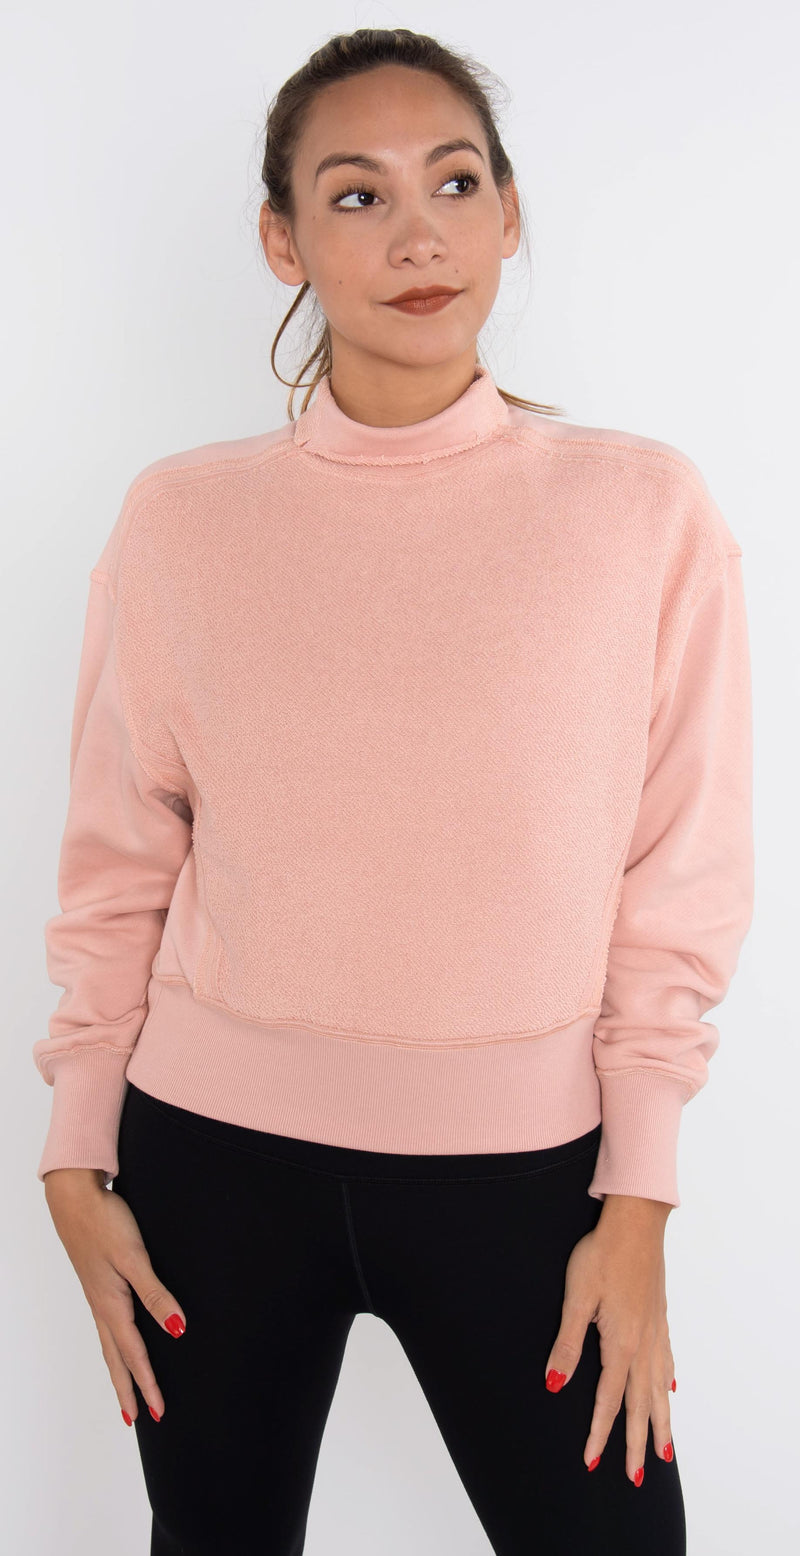 Twenty Montréal Sunnyside Mock Neck Top Rose Gold